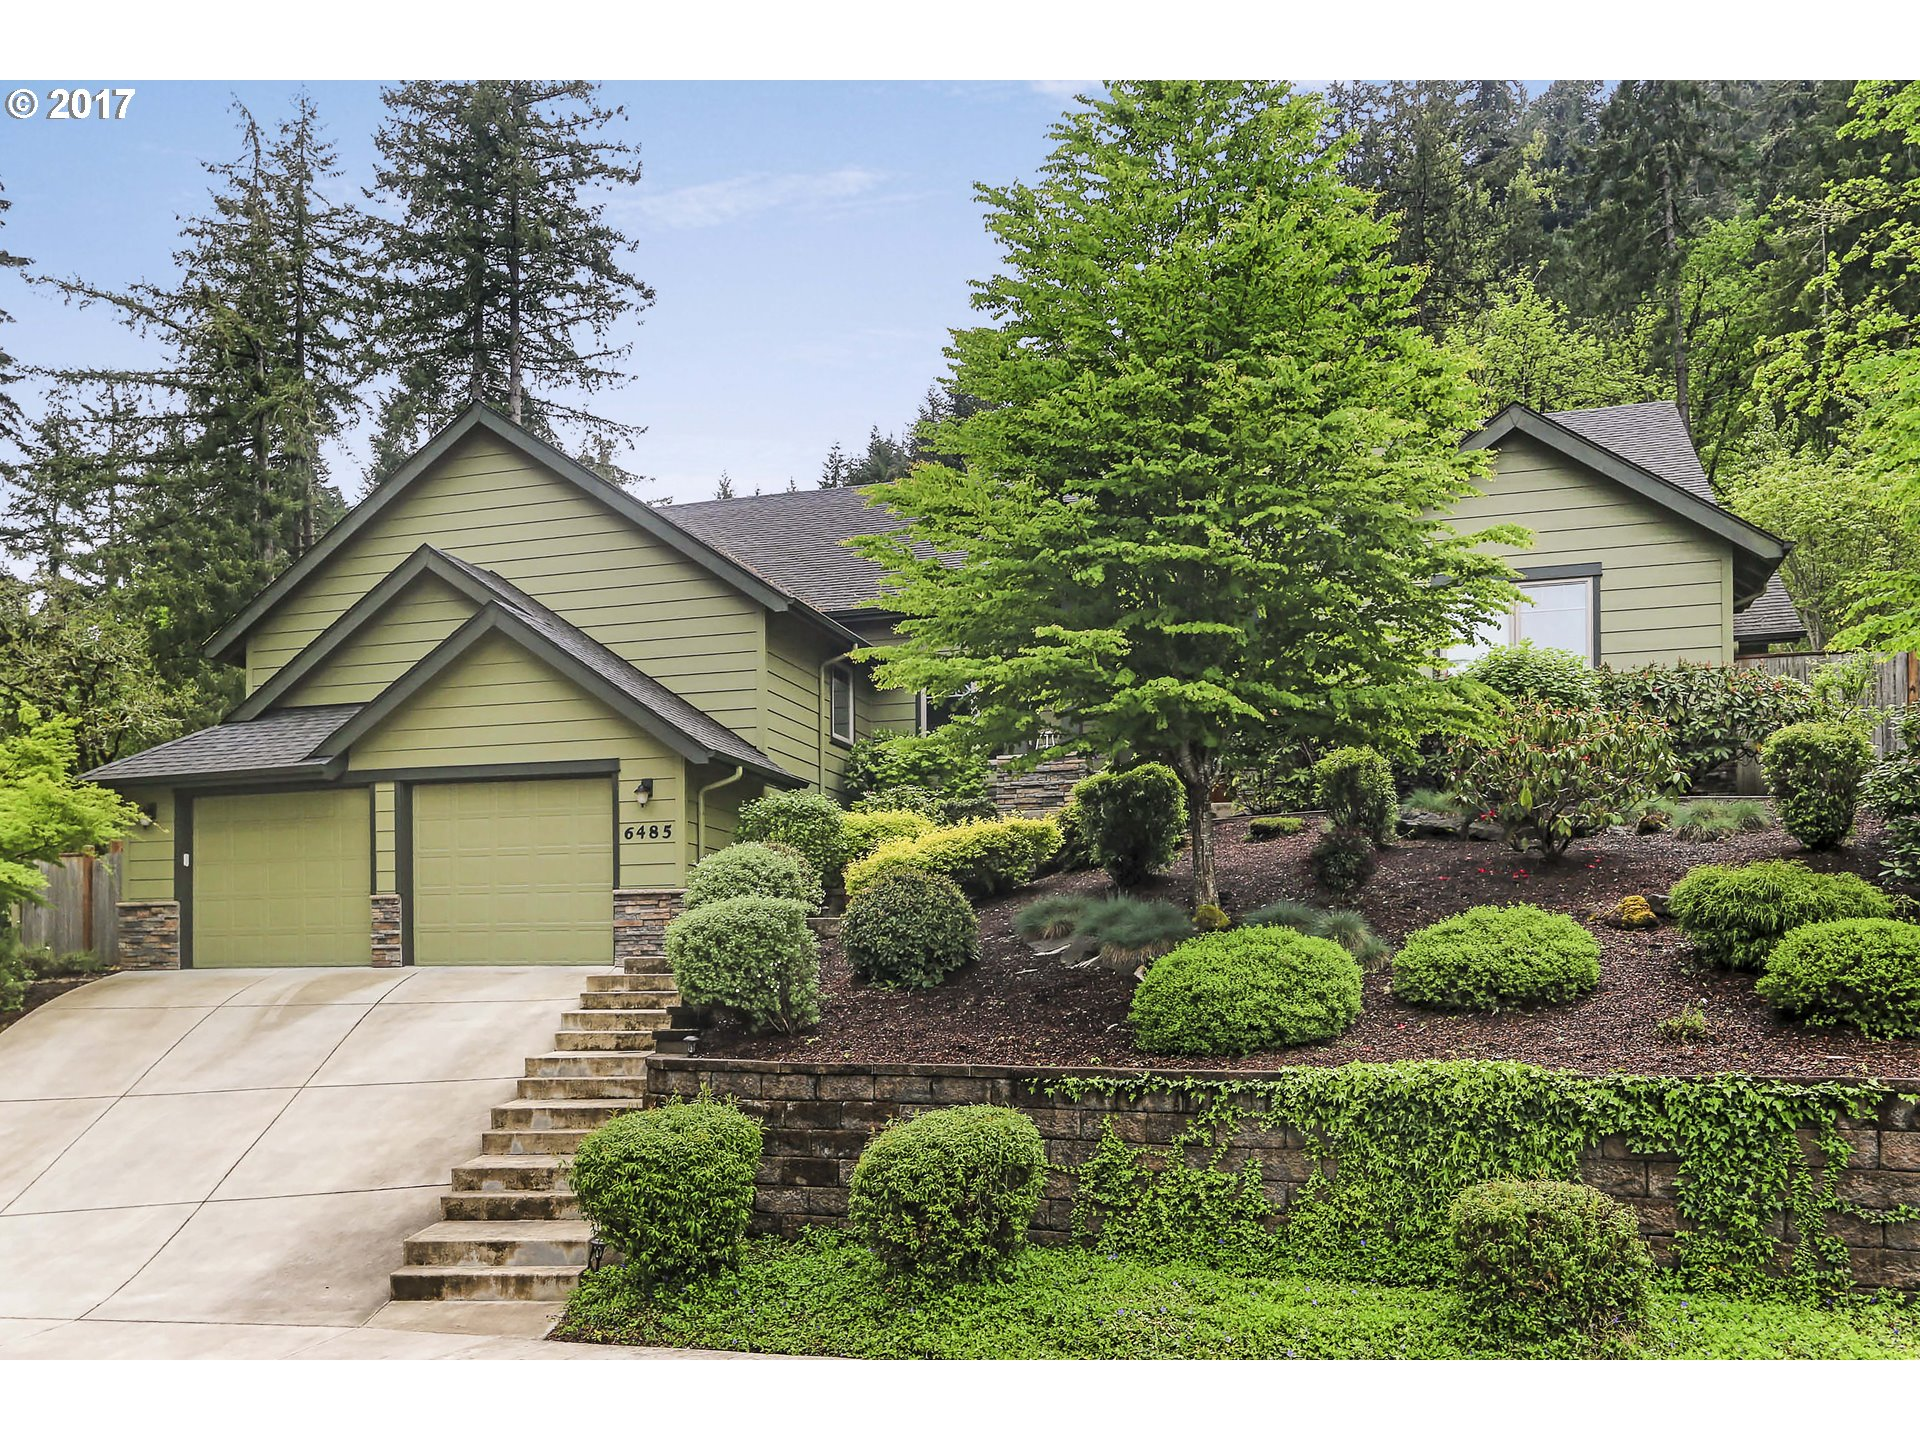 6485 DOGWOOD ST, Springfield, OR 97478